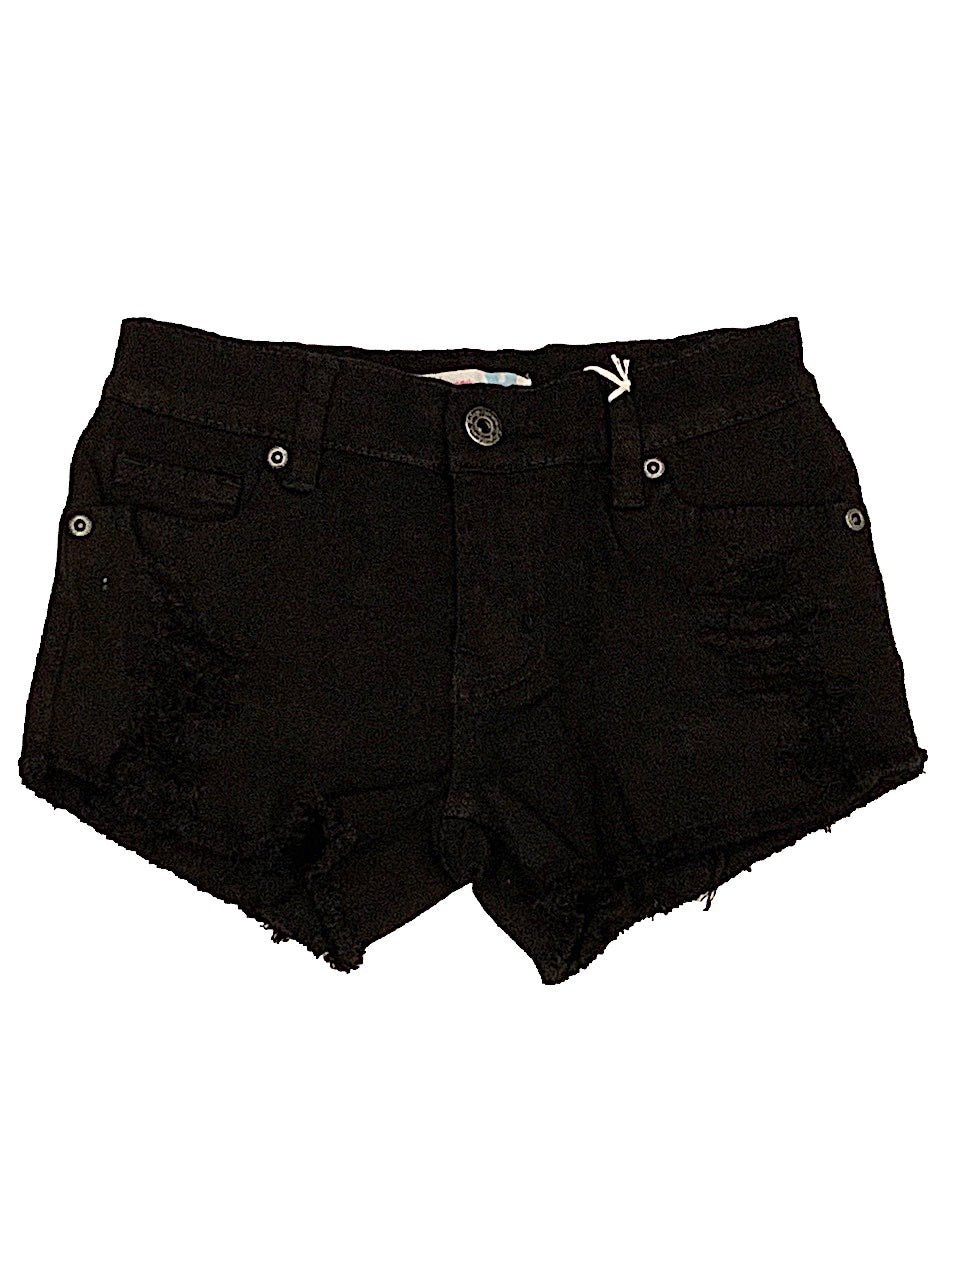 Vintage Havana Black Distressed Stretch Denim Shorts